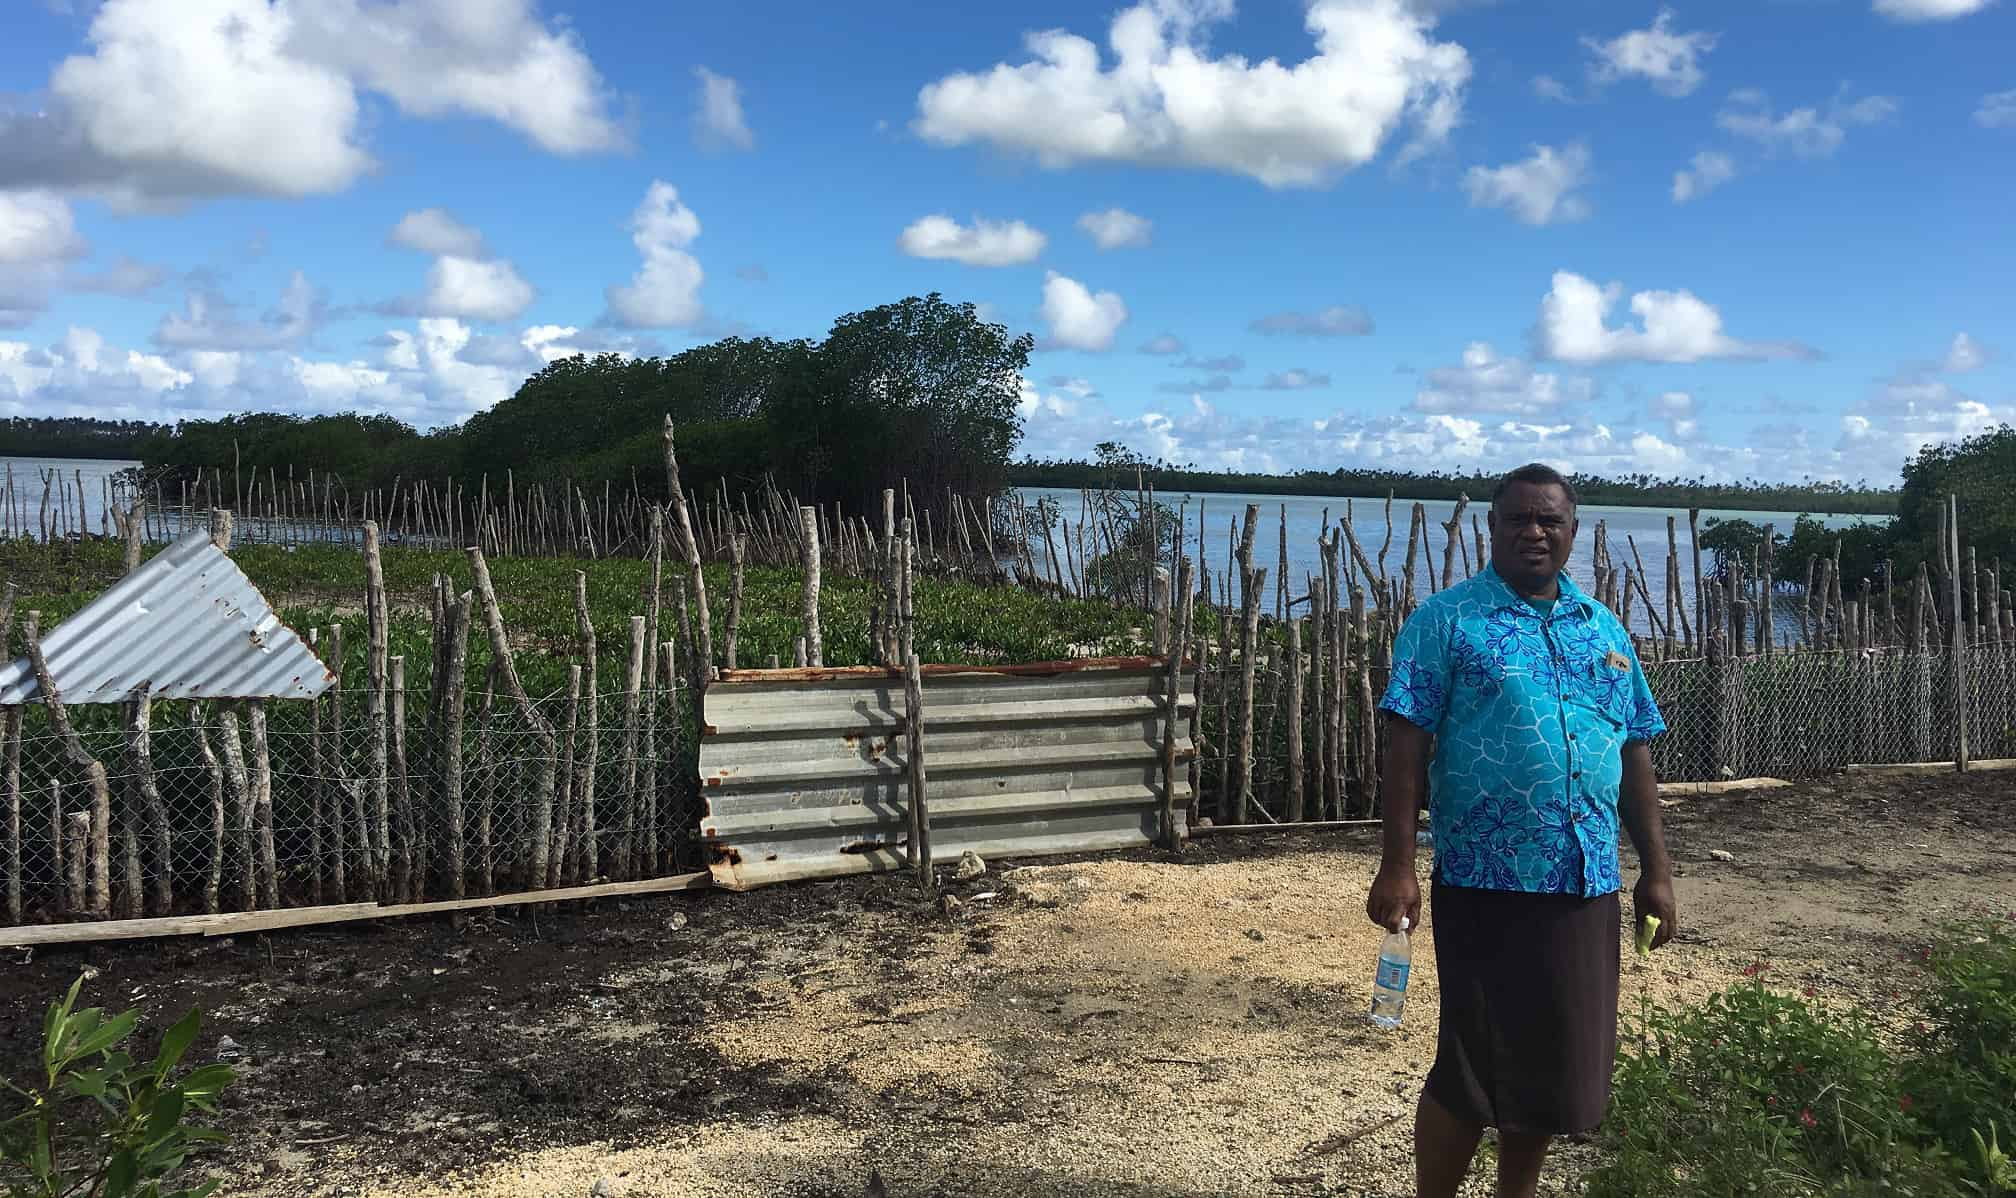 A man stands in front of mangroves trees.